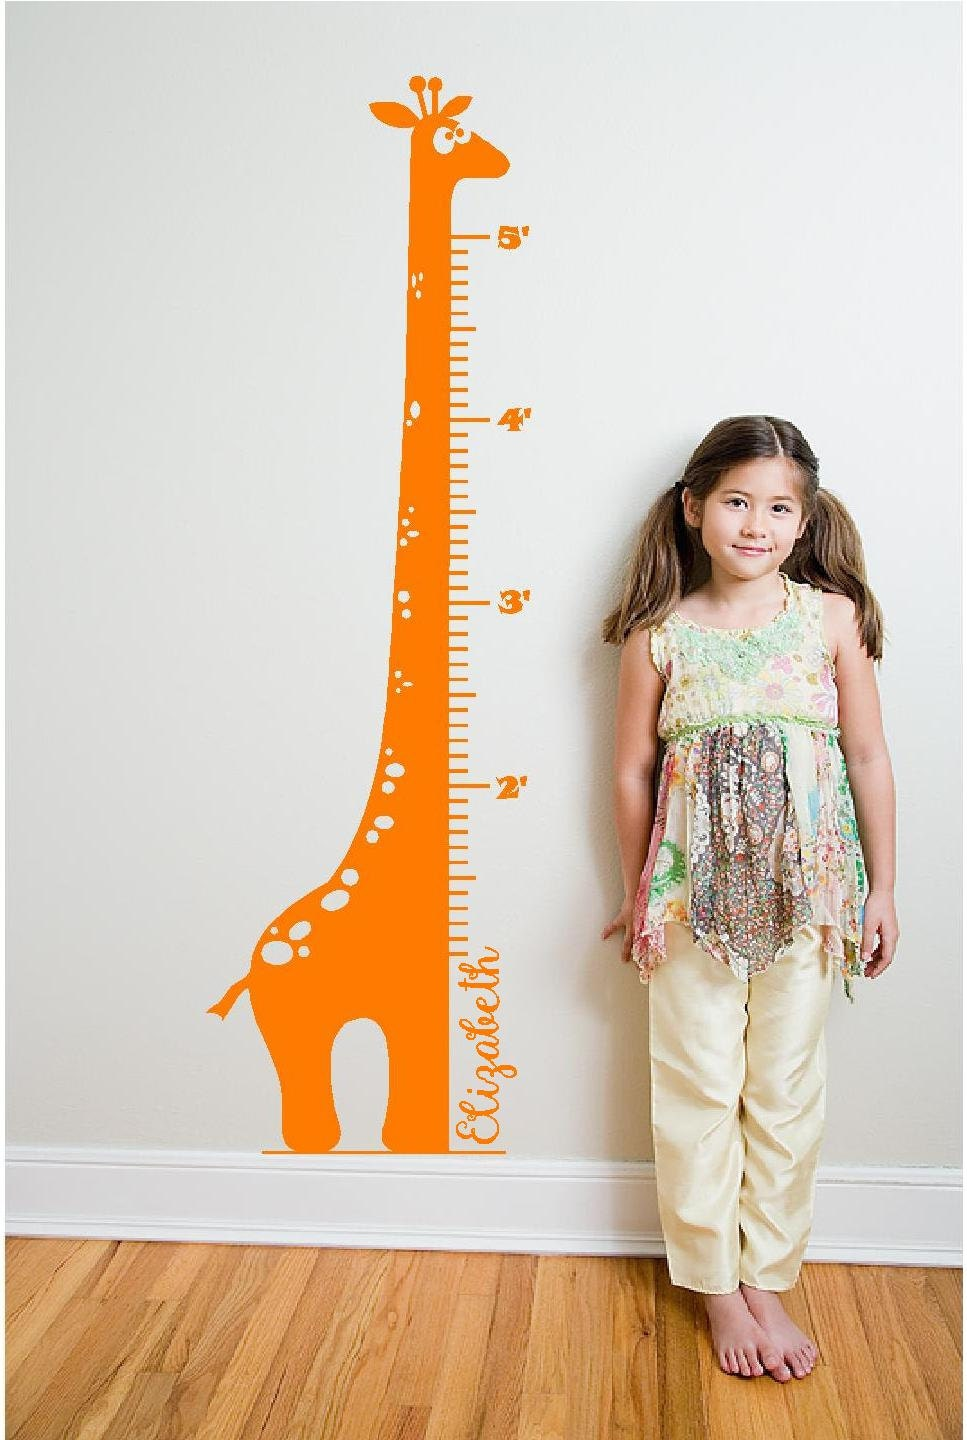 Personalized 6 giraffe growth chart vinyl decall zoom geenschuldenfo Image collections